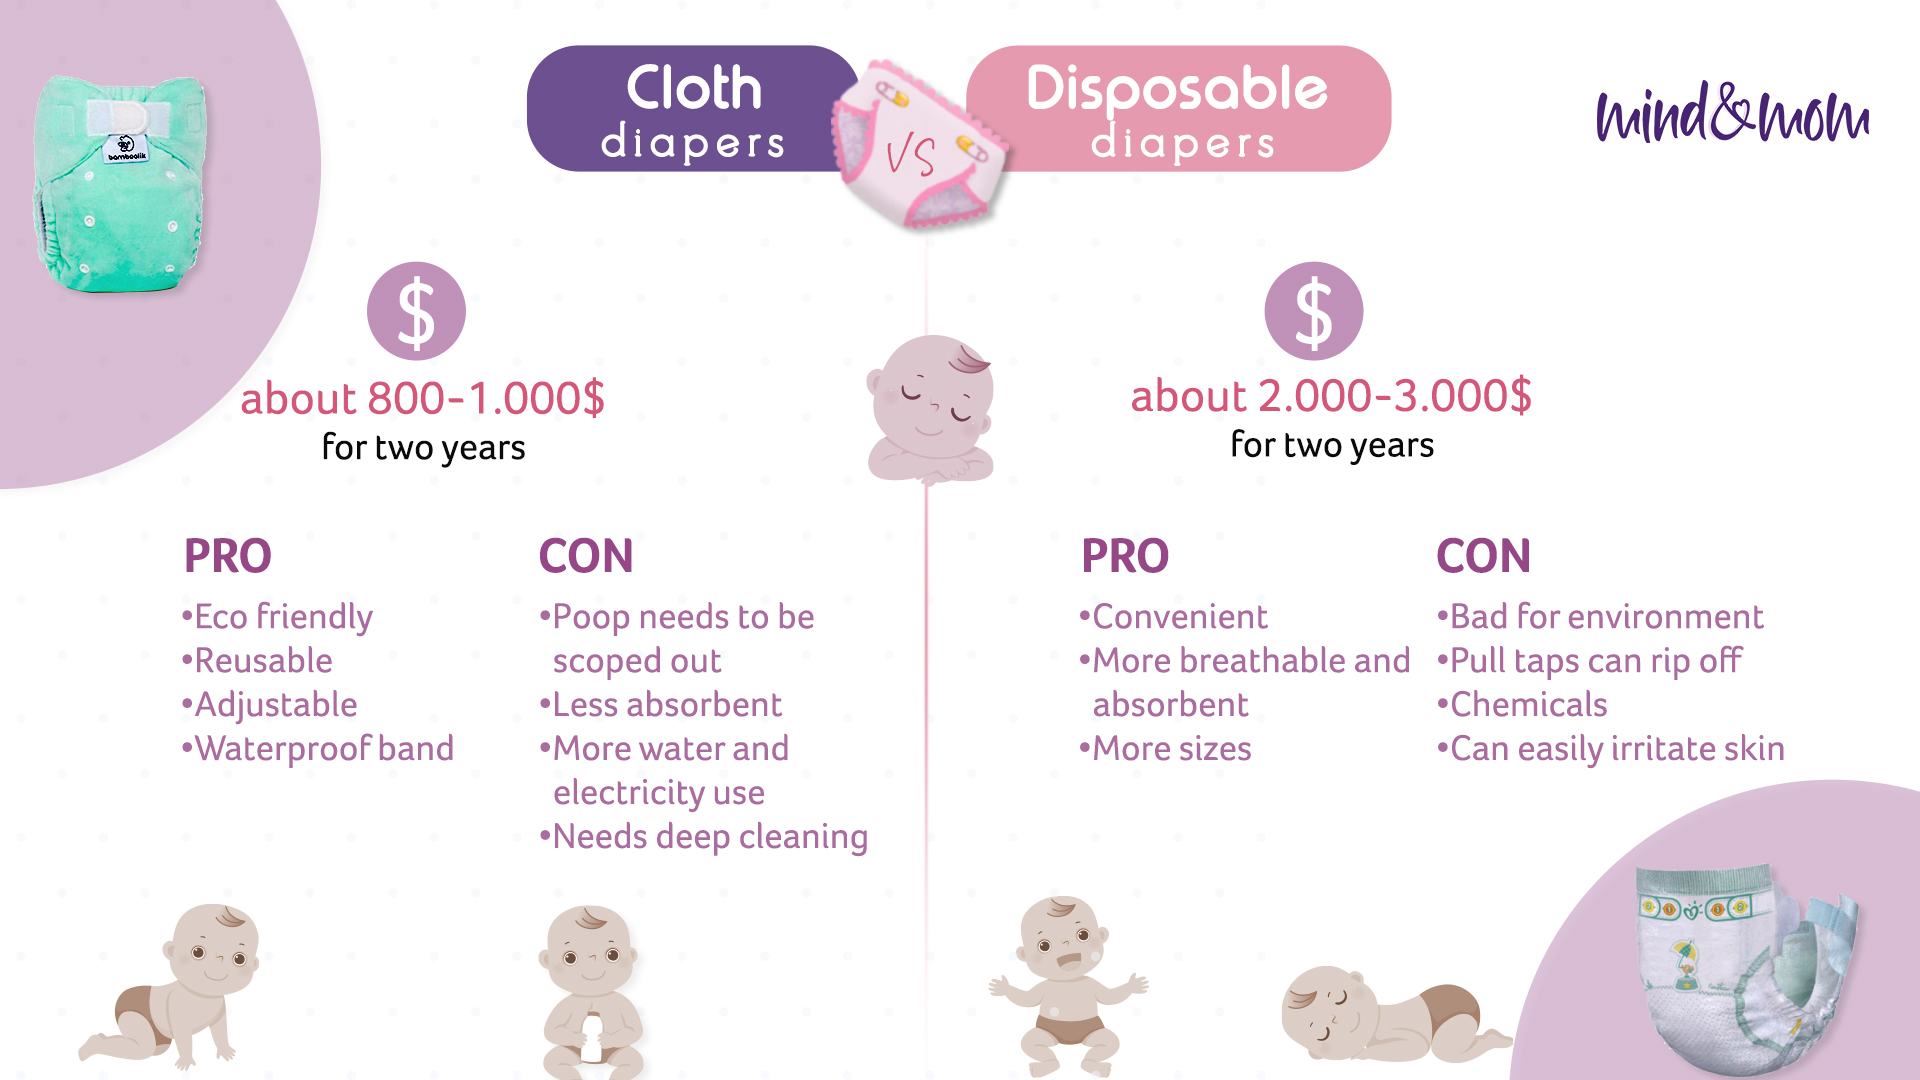 pros and cons of cloth and disposable diapers infographics